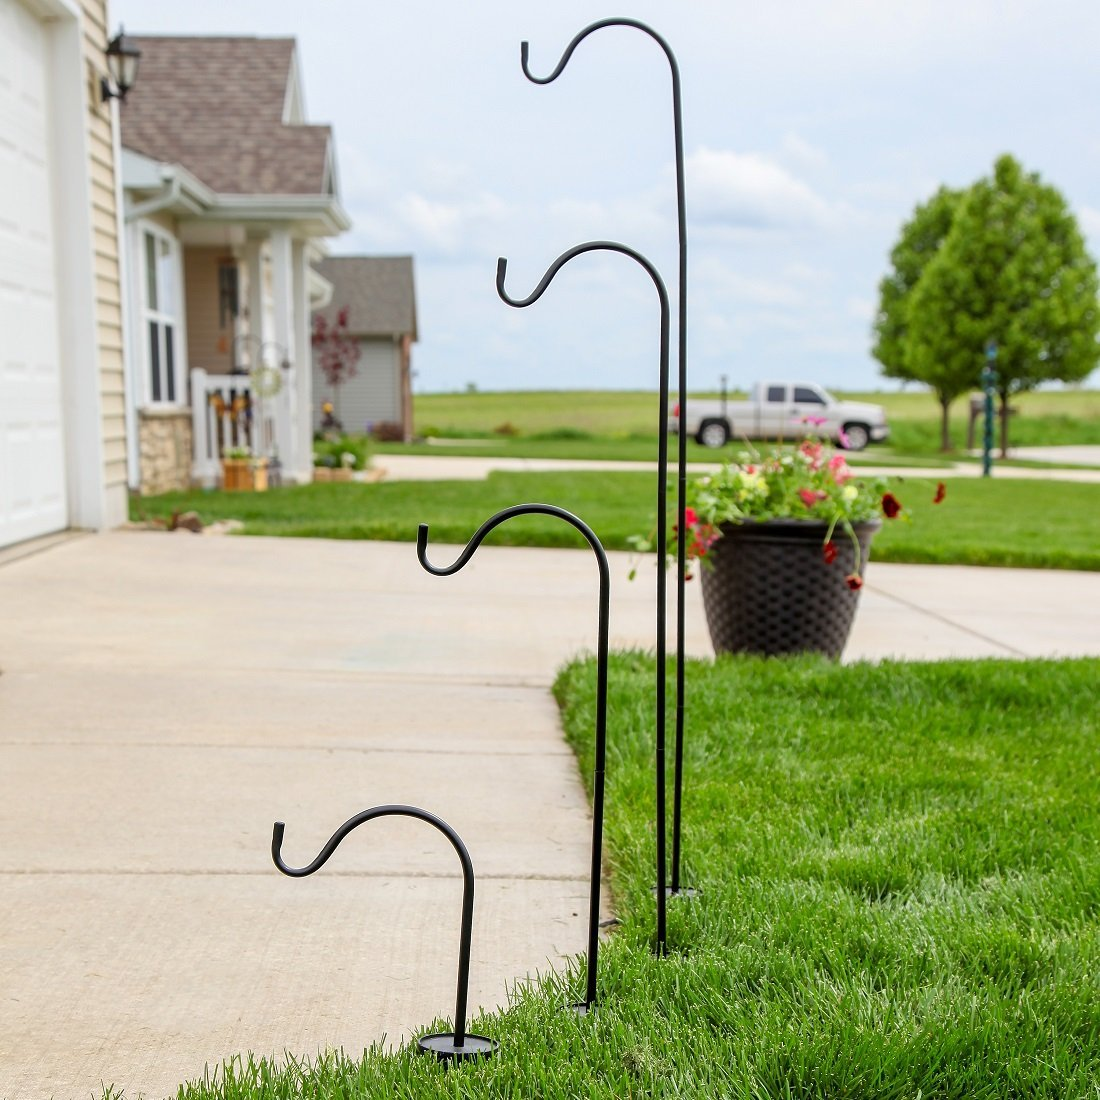 Details about 4 Pack In-Ground Shepherds Hook Adjustable Height Assembly  Steel Pole Set Black